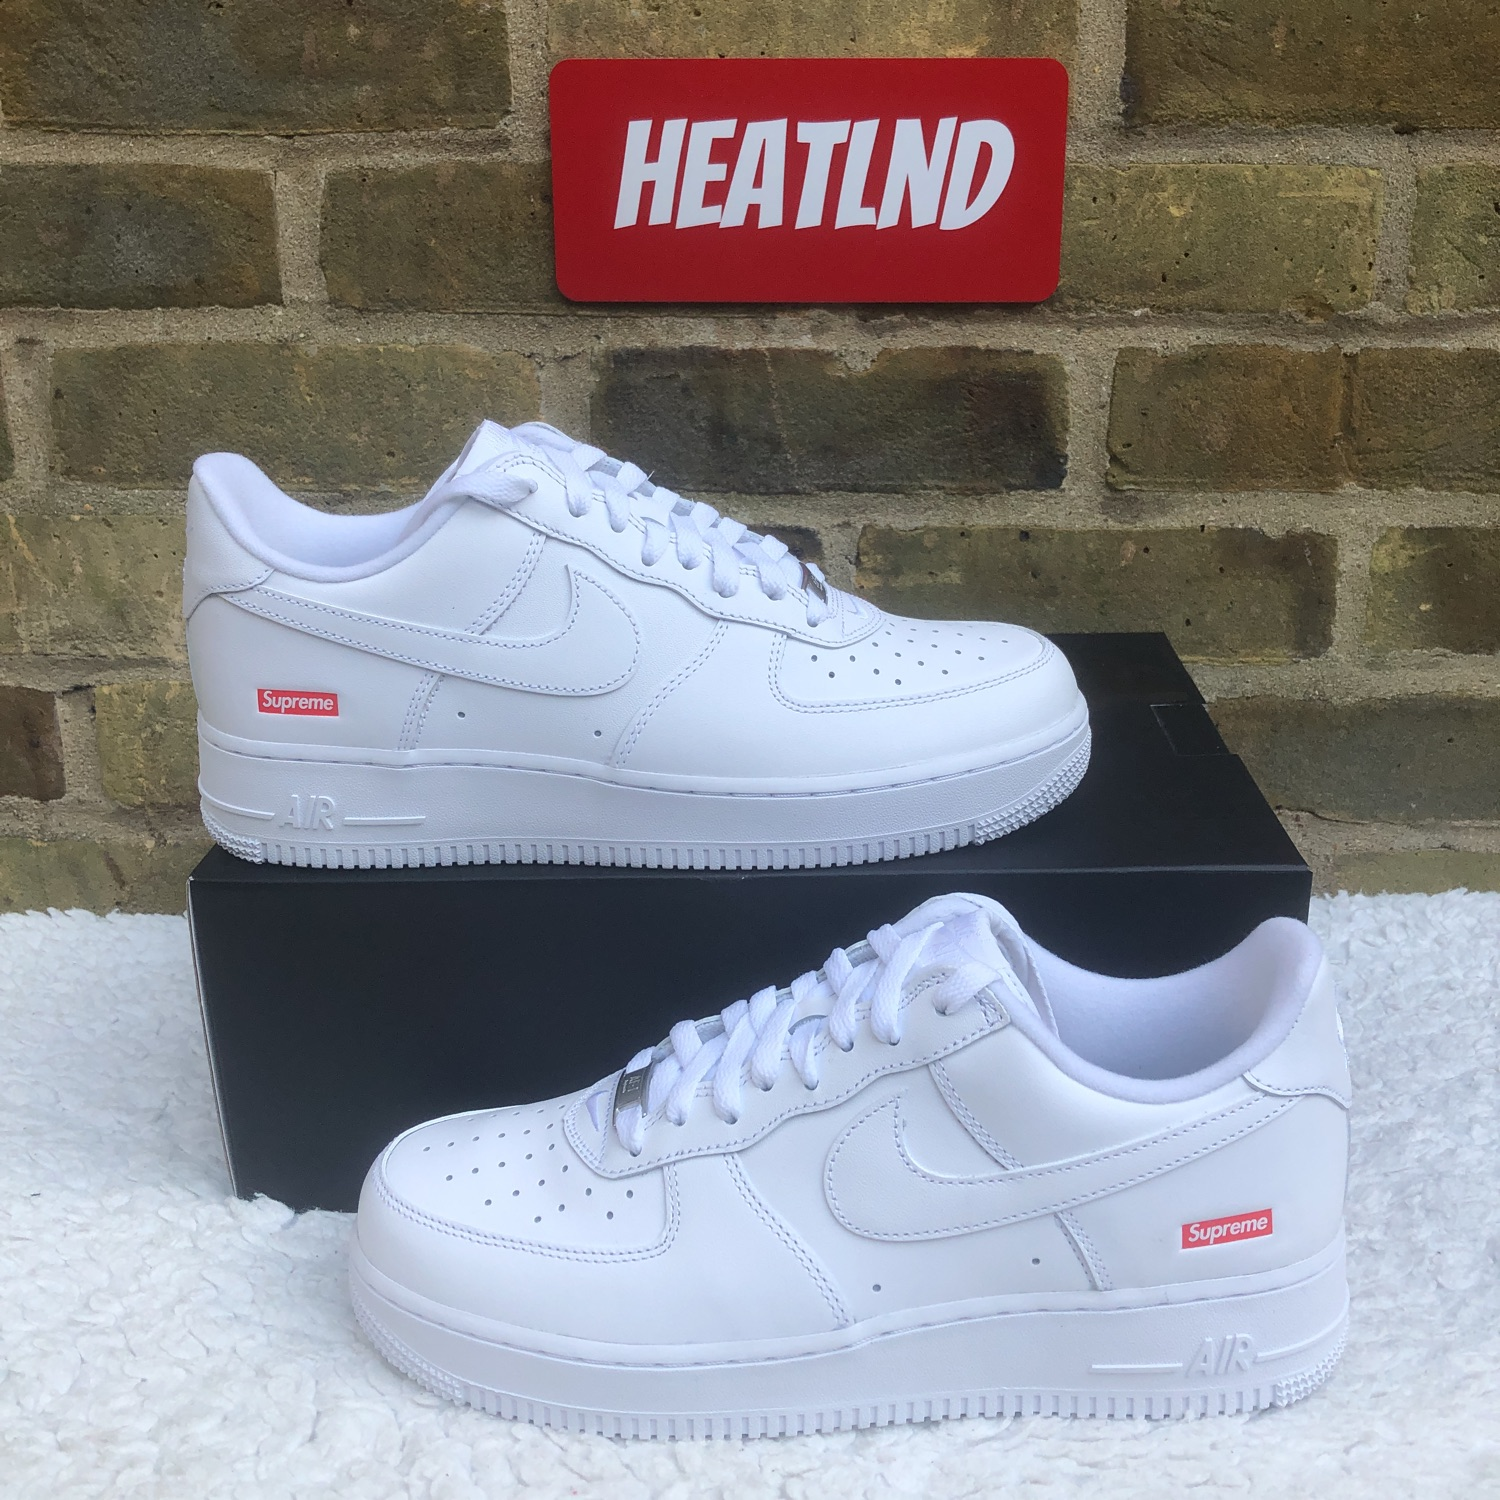 Supreme X Nike Air Force 1 Low White